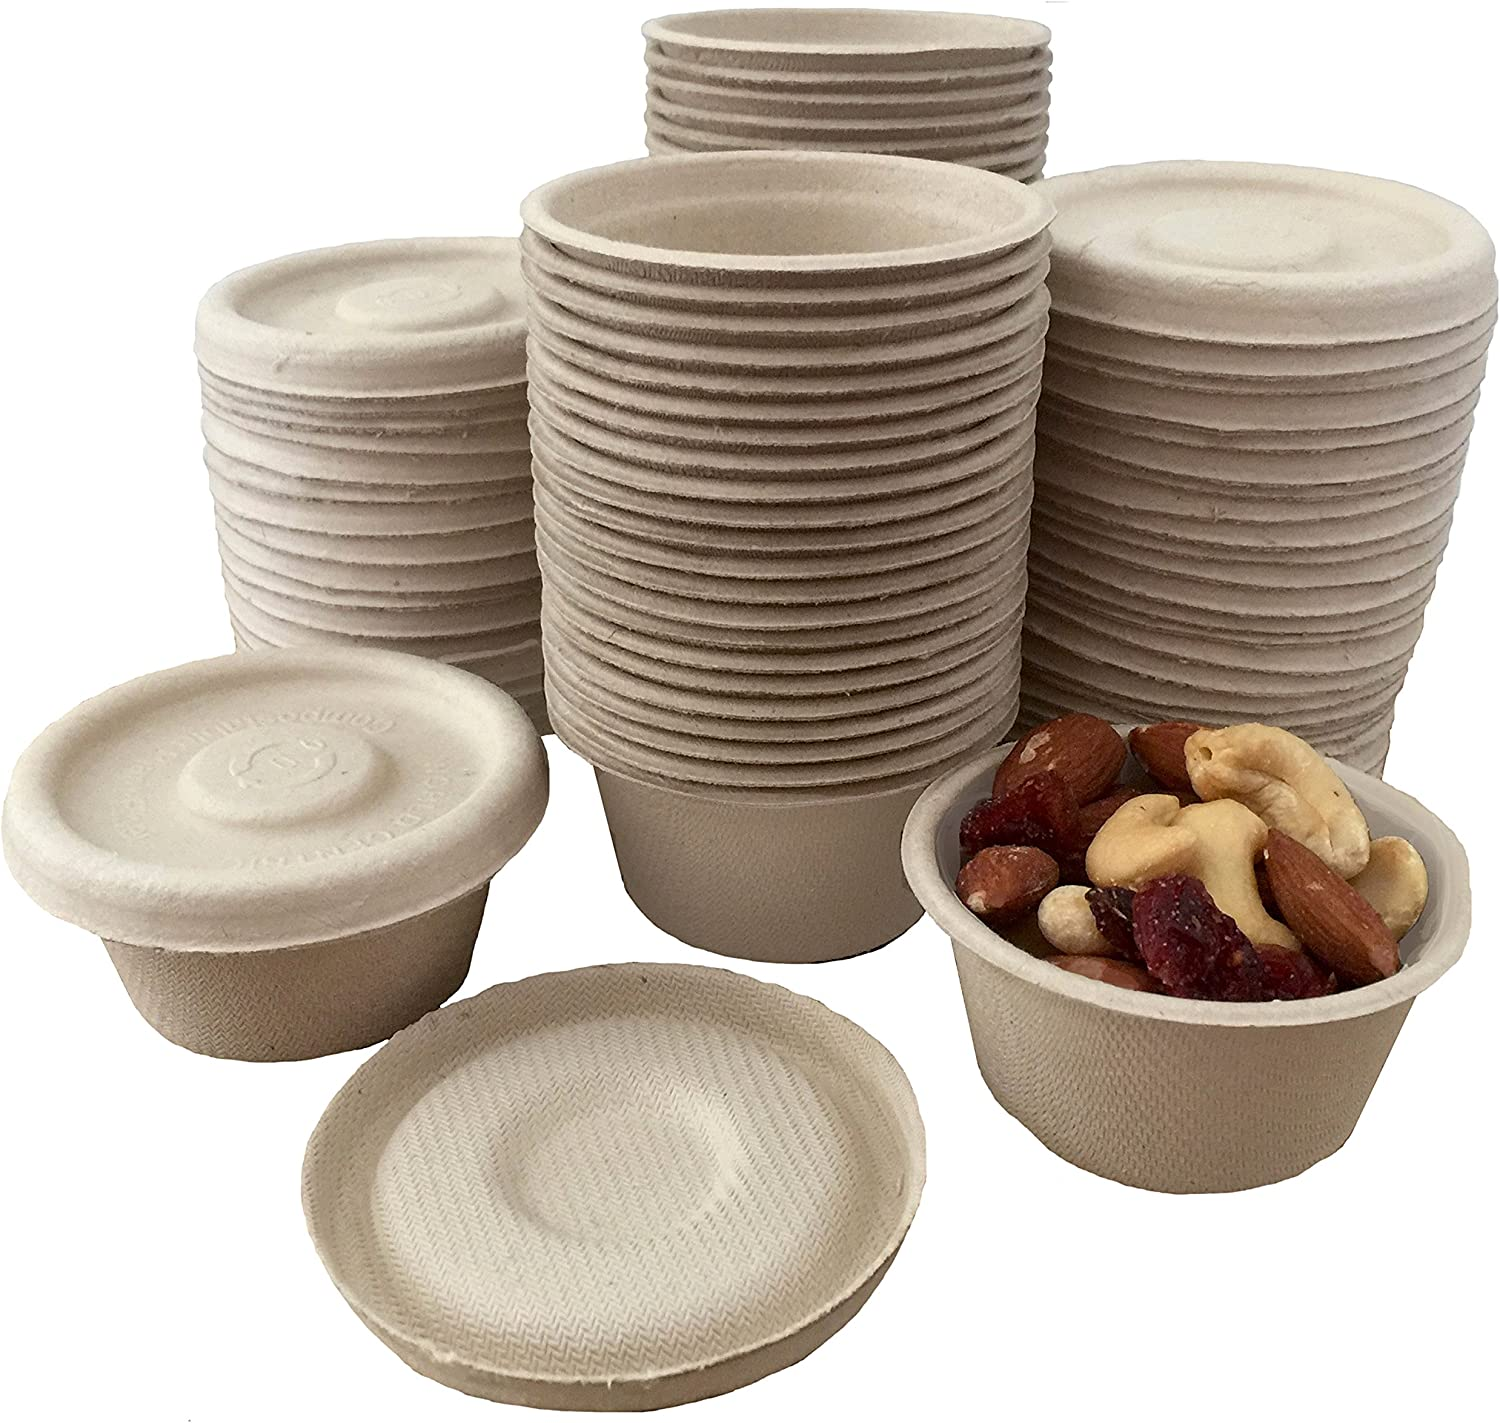 2 Ounce Souffle Cups and Lids - 100% Biodegradable and Compostable - Bagasse/Wheat Fiber - 50 Pack Outside the Box Papers Brand